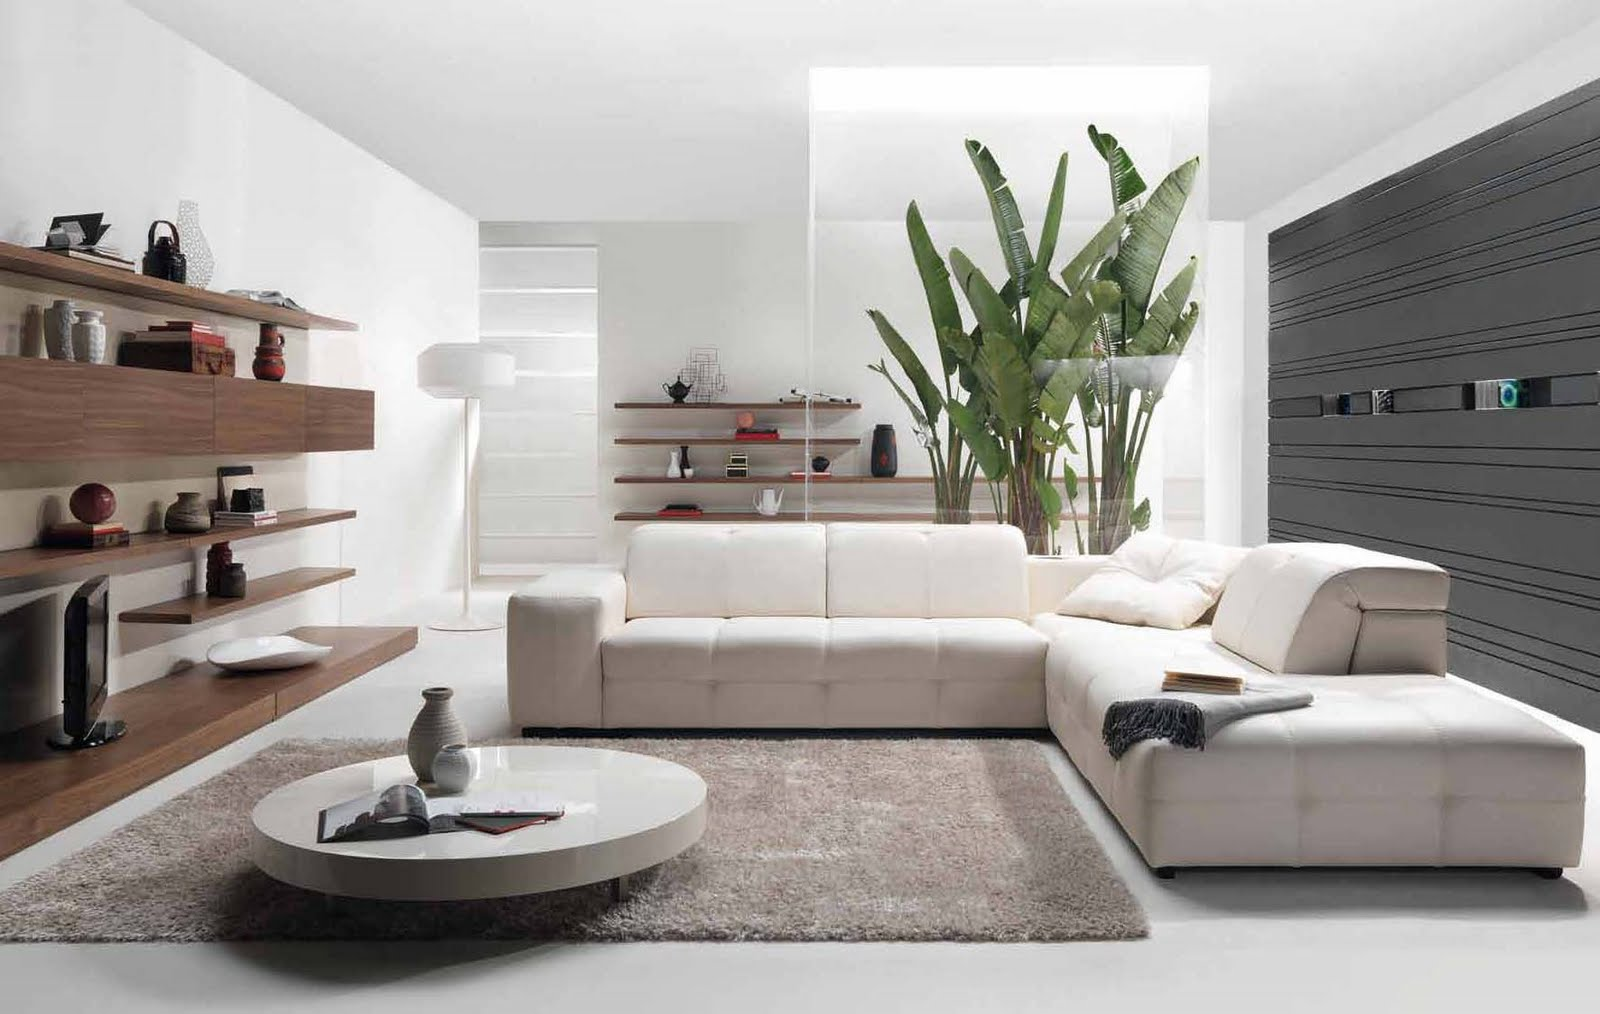 Future house design modern living room interior design for New living room decor